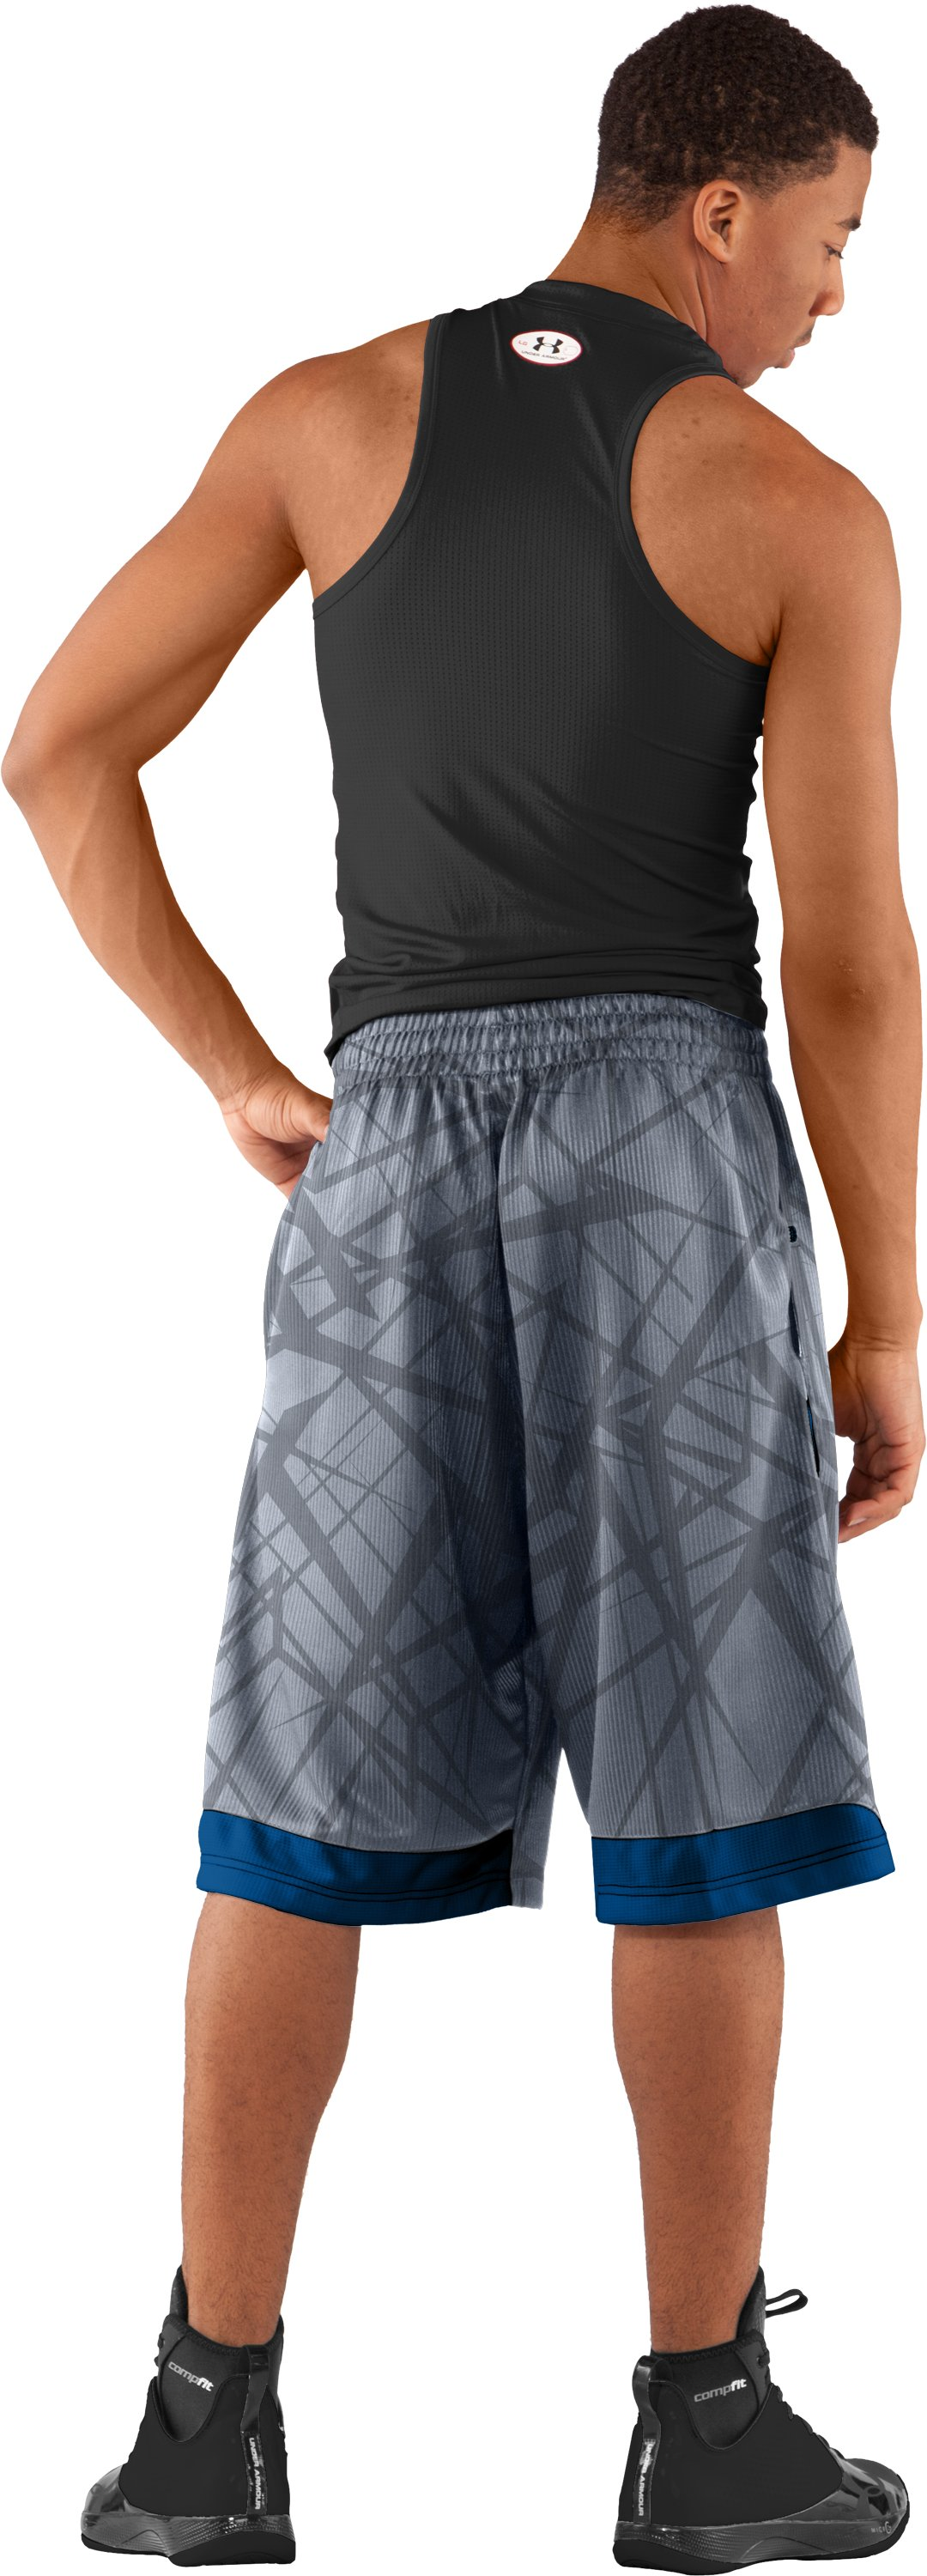 "Men's Printed UA Valkyrie 12"" Basketball Shorts, Steel, Back"